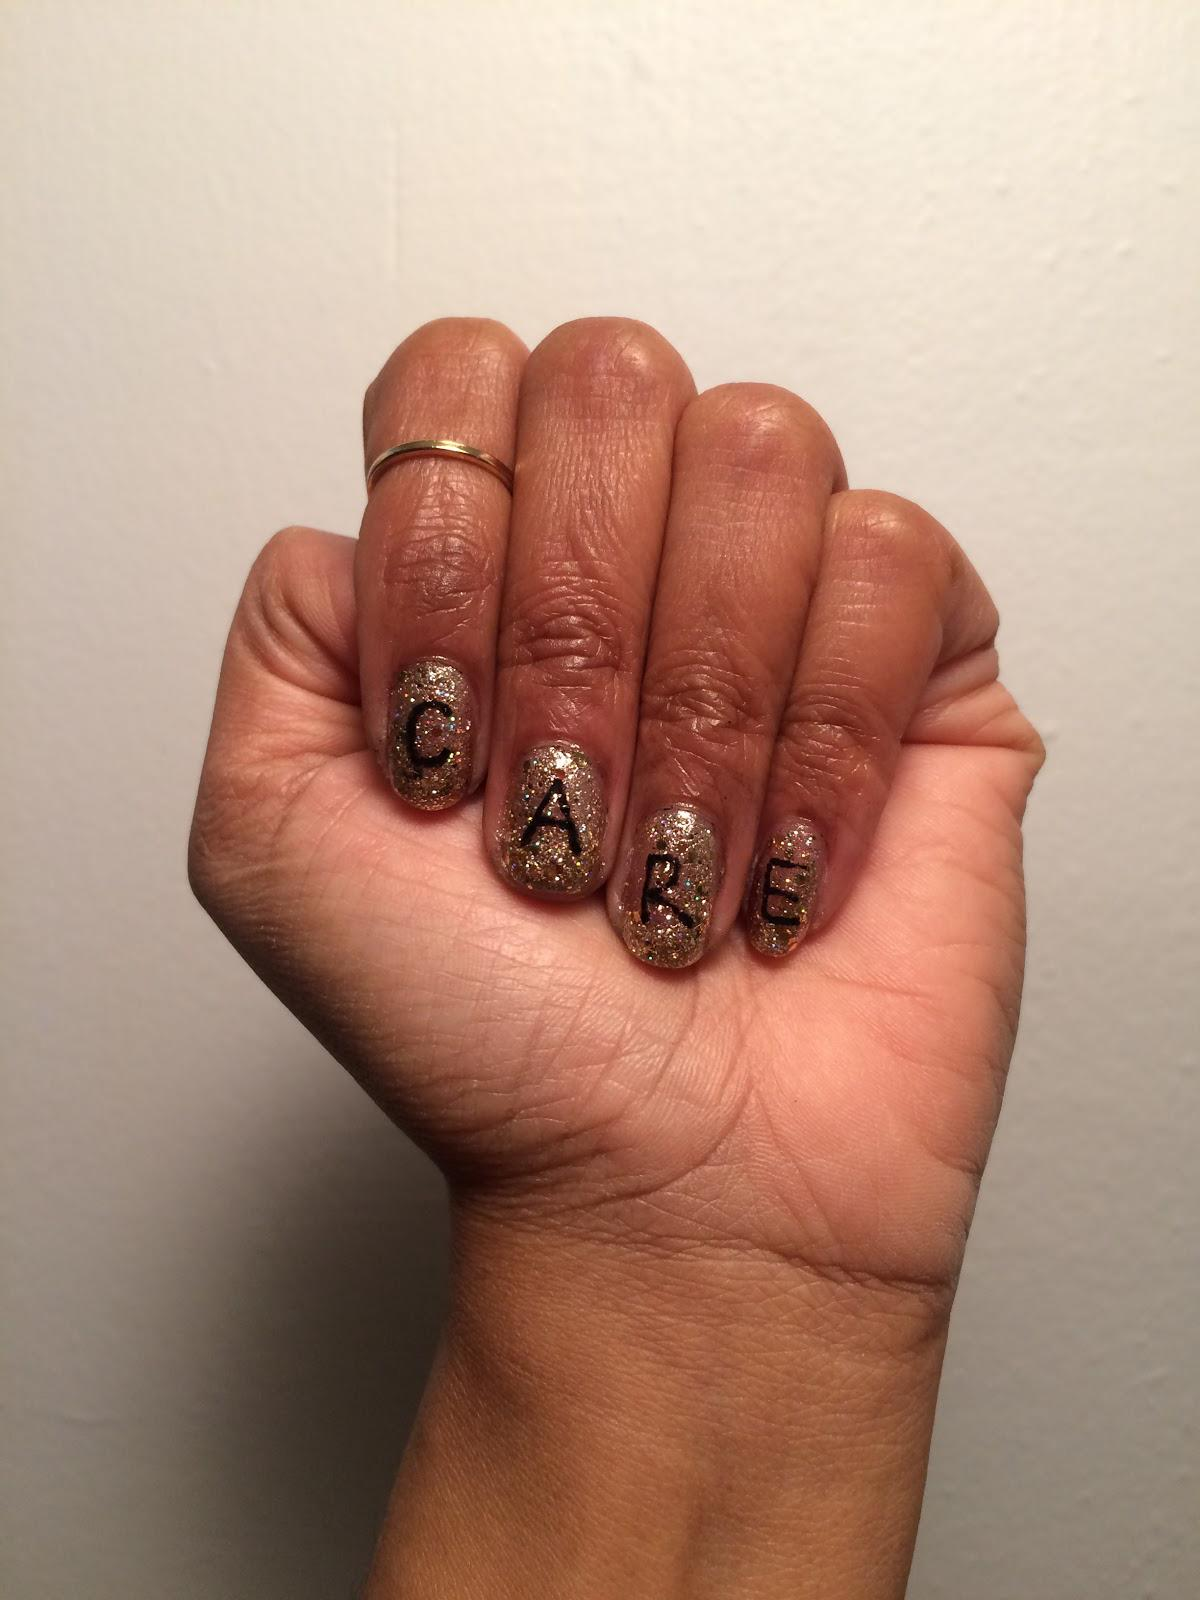 """The word """"CARE"""" is spelled out in black letters on gold glitter nail polish on four fingernails of a person's left hand, shown in a fist."""